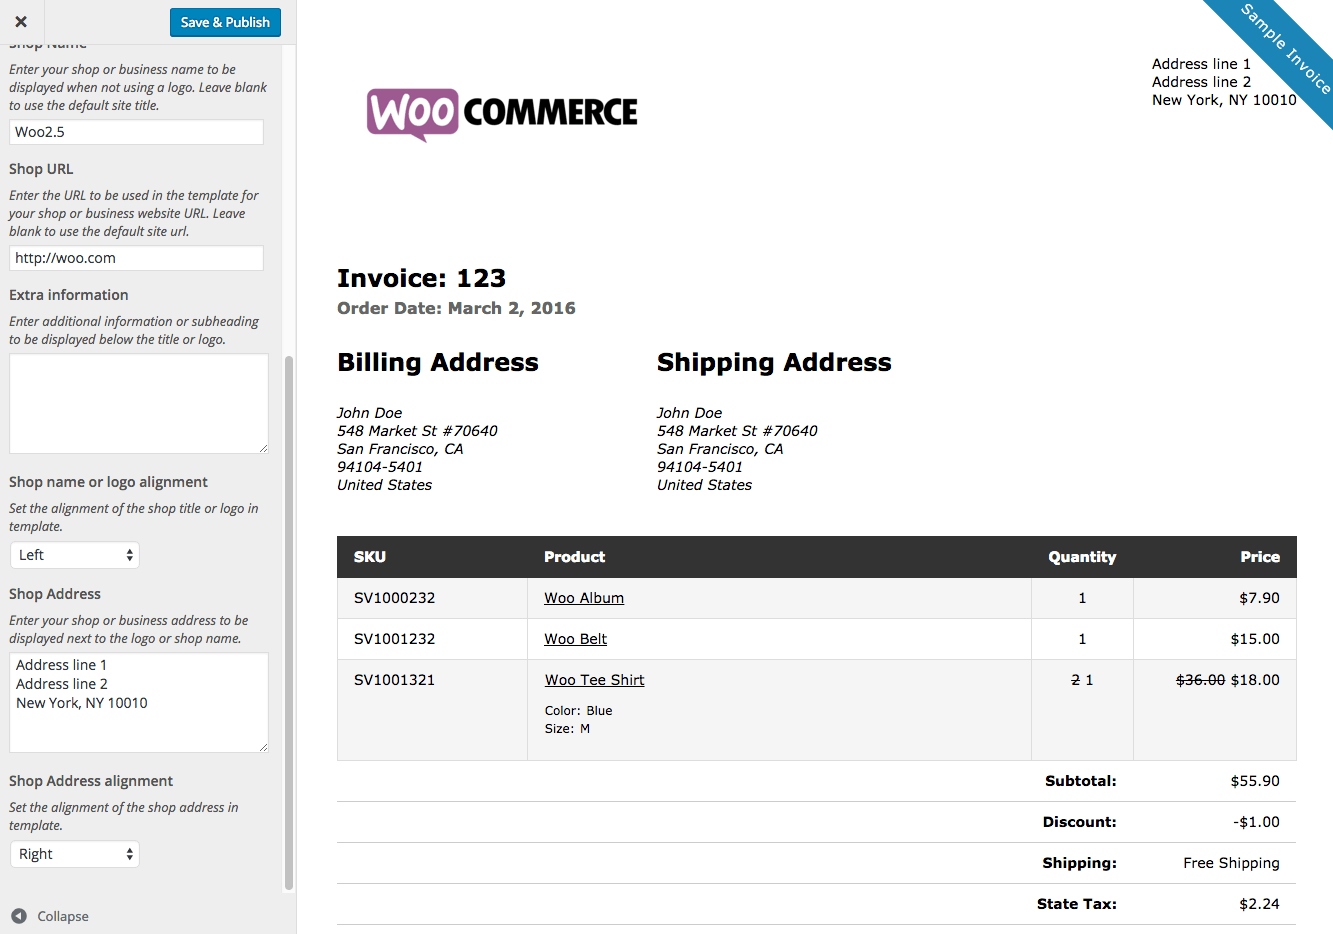 Maidofhonortoastus  Splendid Woocommerce Print Invoices Amp Packing Lists  Woocommerce Docs With Handsome Woocommerce Print Invoices  Packing Lists Customizer With Comely Invoice Timesheet Also Invoicing Api In Addition Tax Invoices And Invoice S As Well As Free Invoice For Mac Additionally Simple Billing Invoice From Docswoocommercecom With Maidofhonortoastus  Handsome Woocommerce Print Invoices Amp Packing Lists  Woocommerce Docs With Comely Woocommerce Print Invoices  Packing Lists Customizer And Splendid Invoice Timesheet Also Invoicing Api In Addition Tax Invoices From Docswoocommercecom